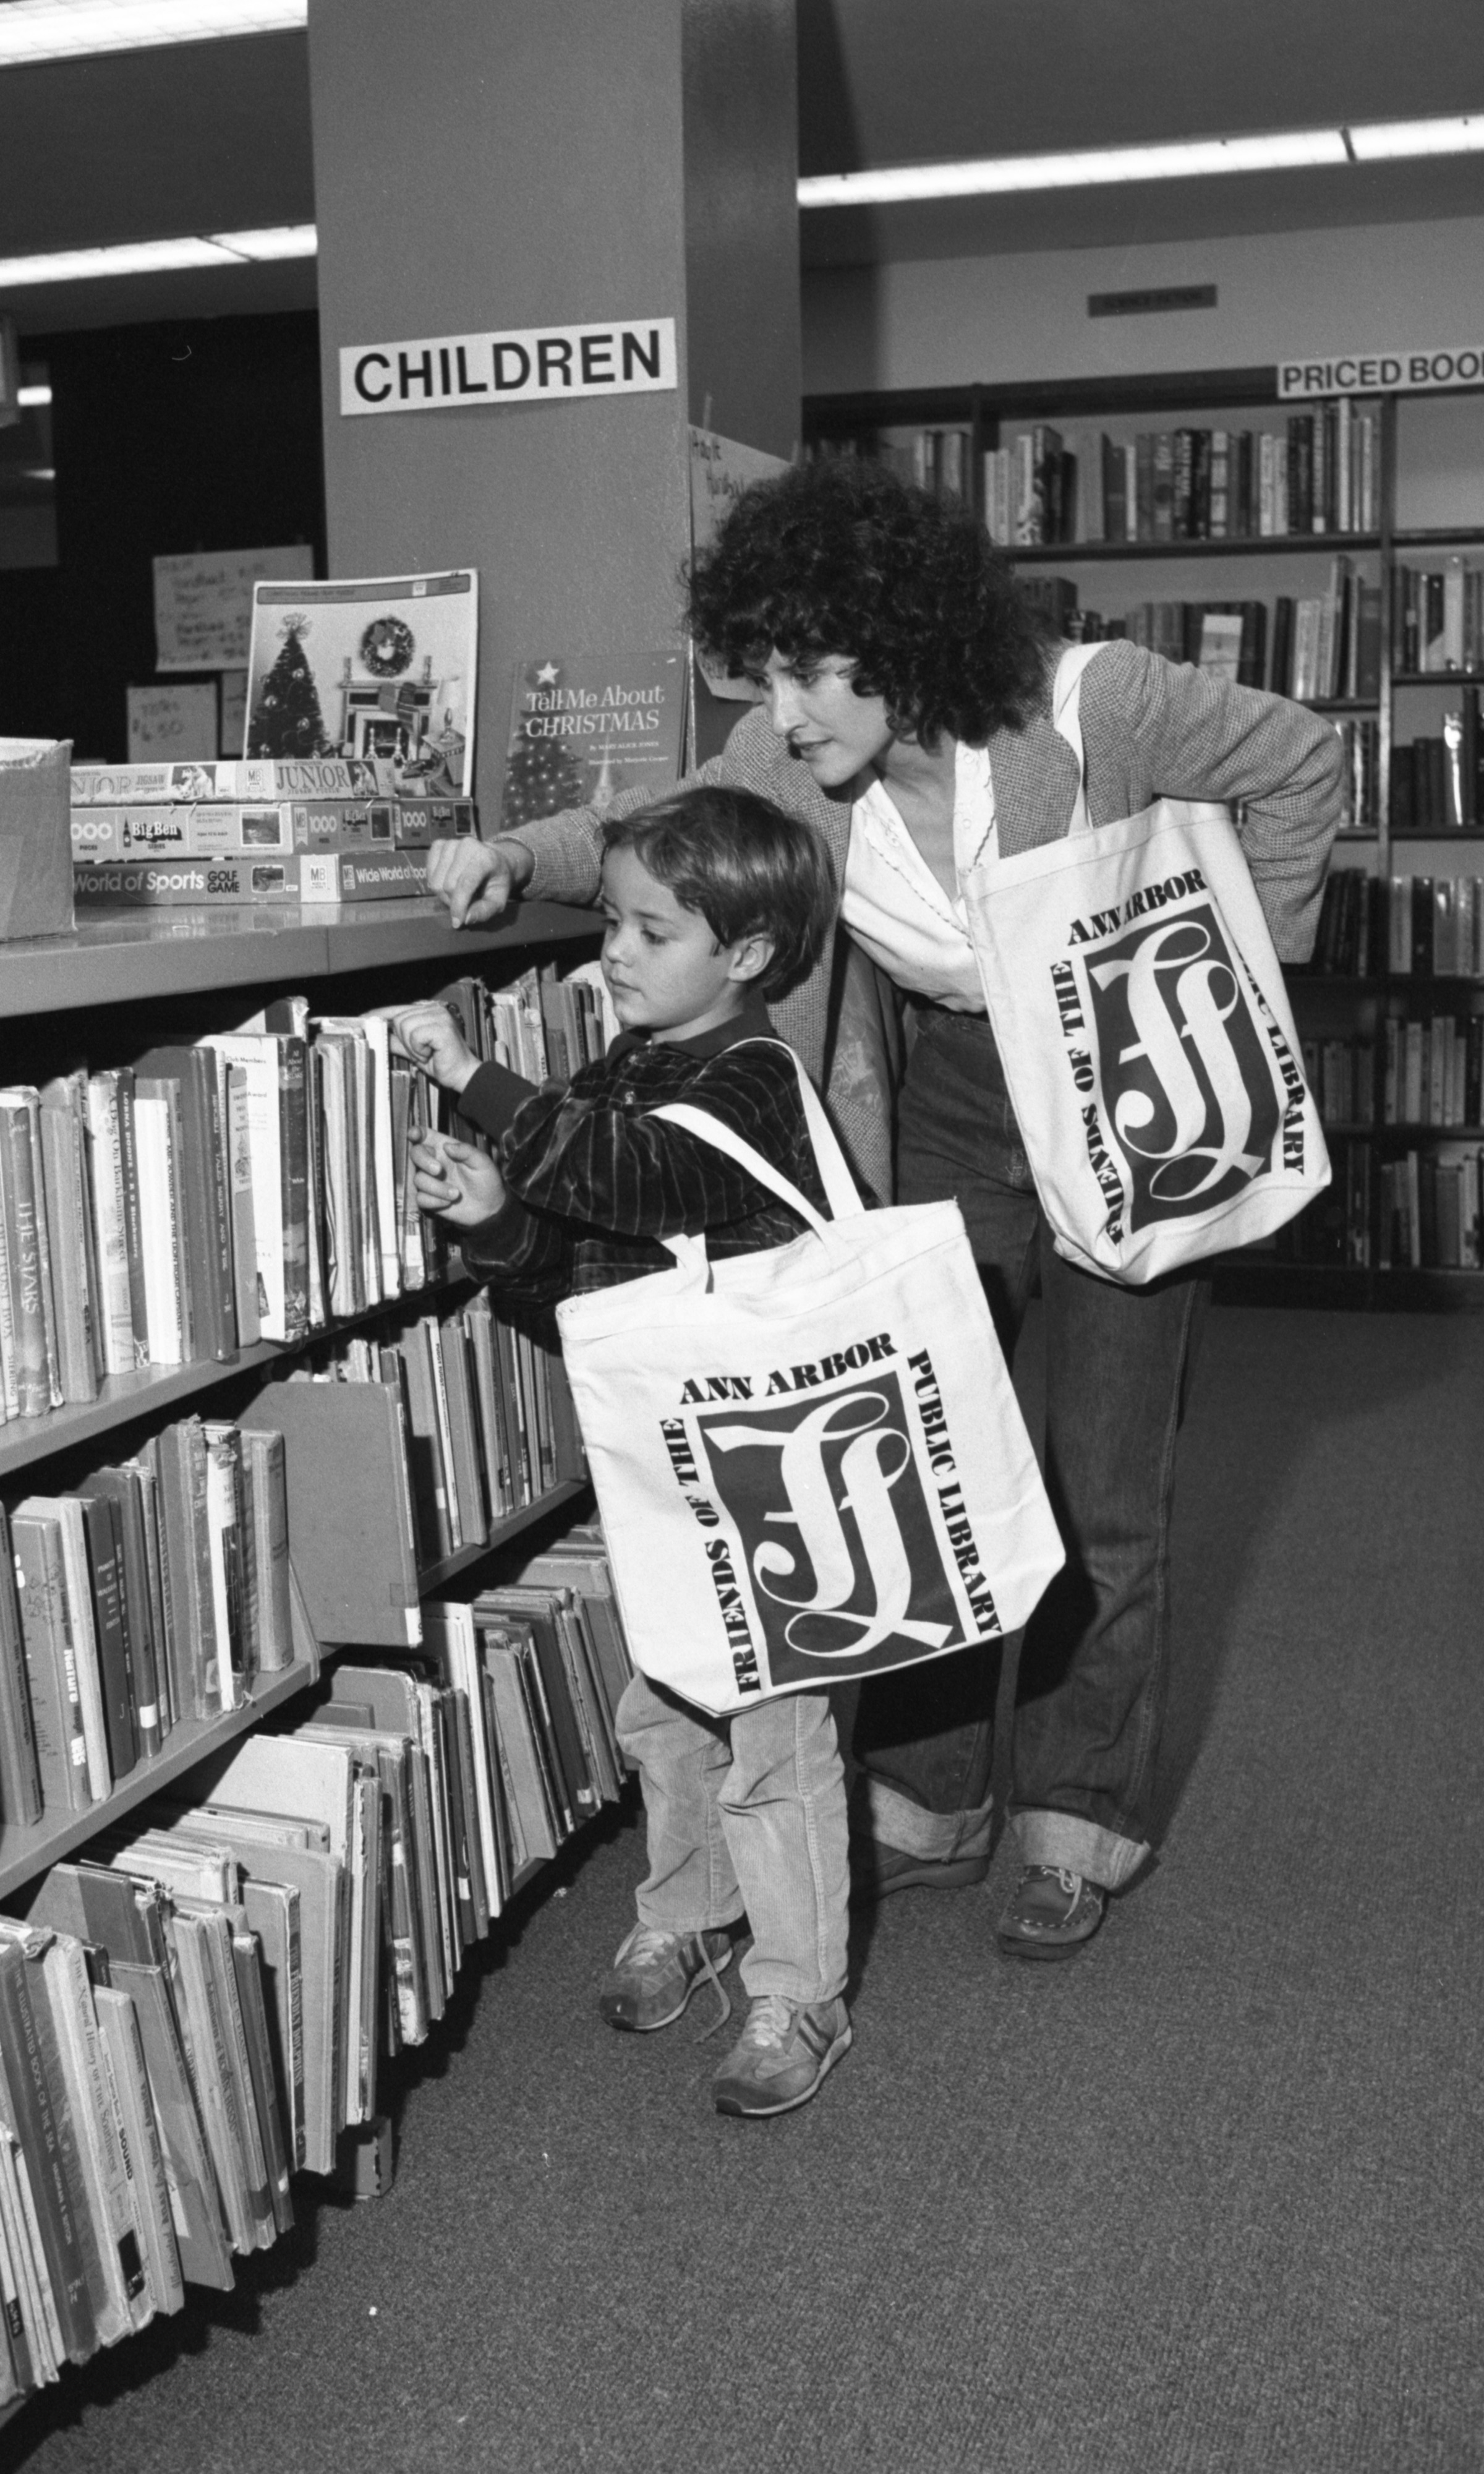 At the Friends of the Ann Arbor Public Library Book Shop, November 1982 image